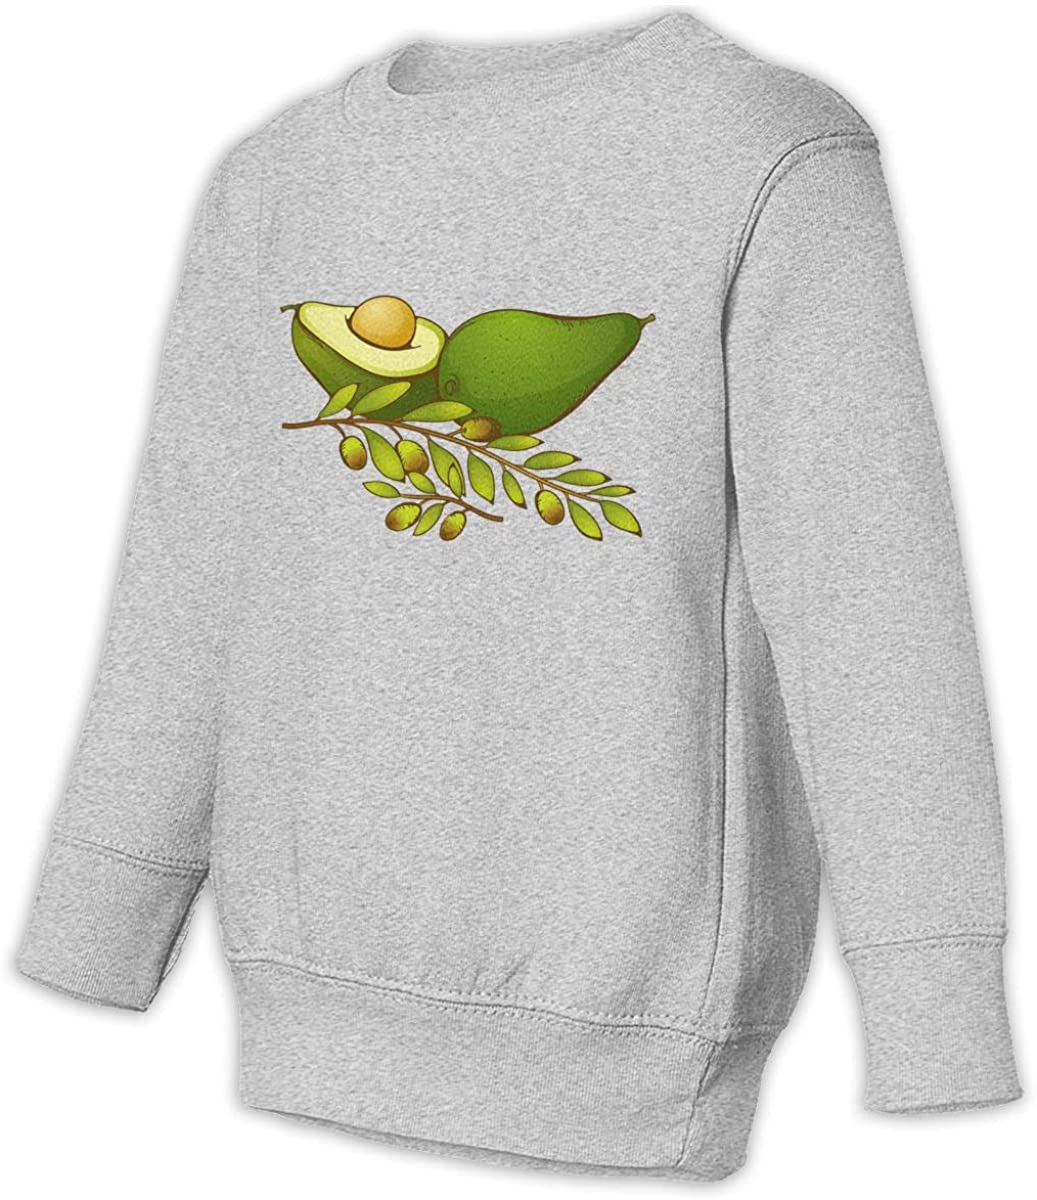 Fleece Pull Over Sweatshirt for Boys Girls Kids Youth Avocado Unisex Toddler Hoodies